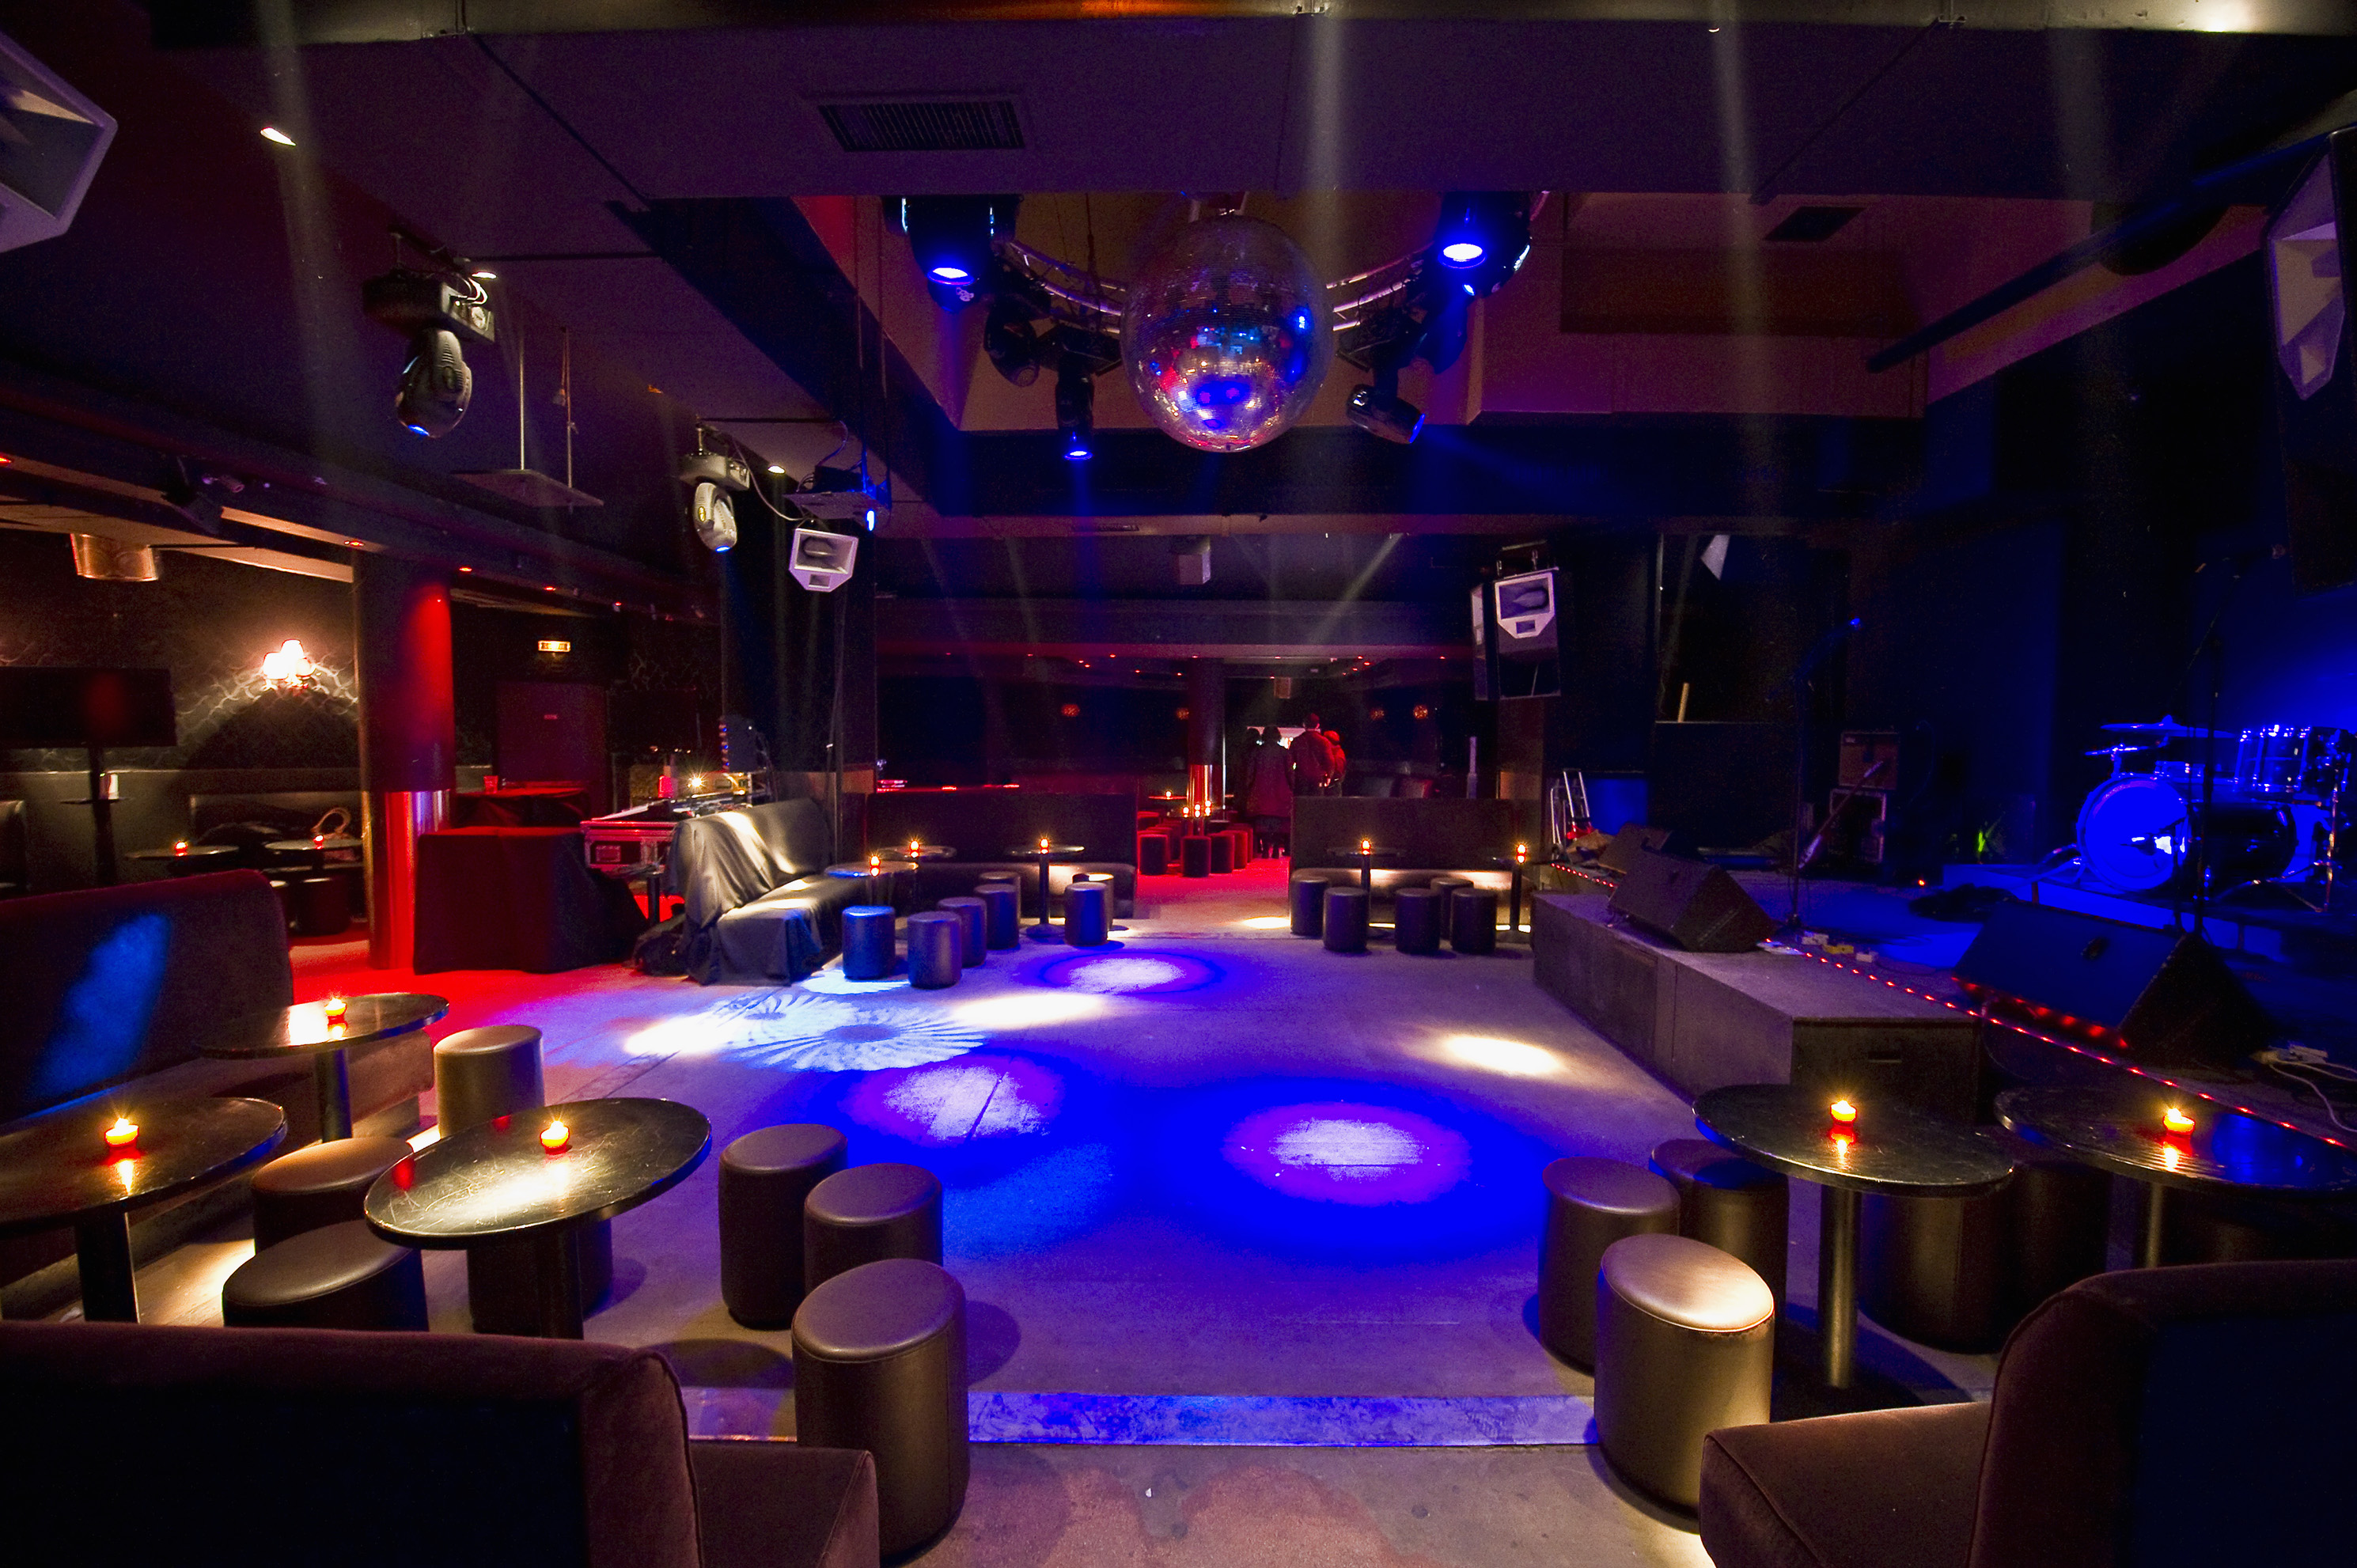 Paris nightlife and clubs nightlife city guide - Les bains douche paris discotheque ...